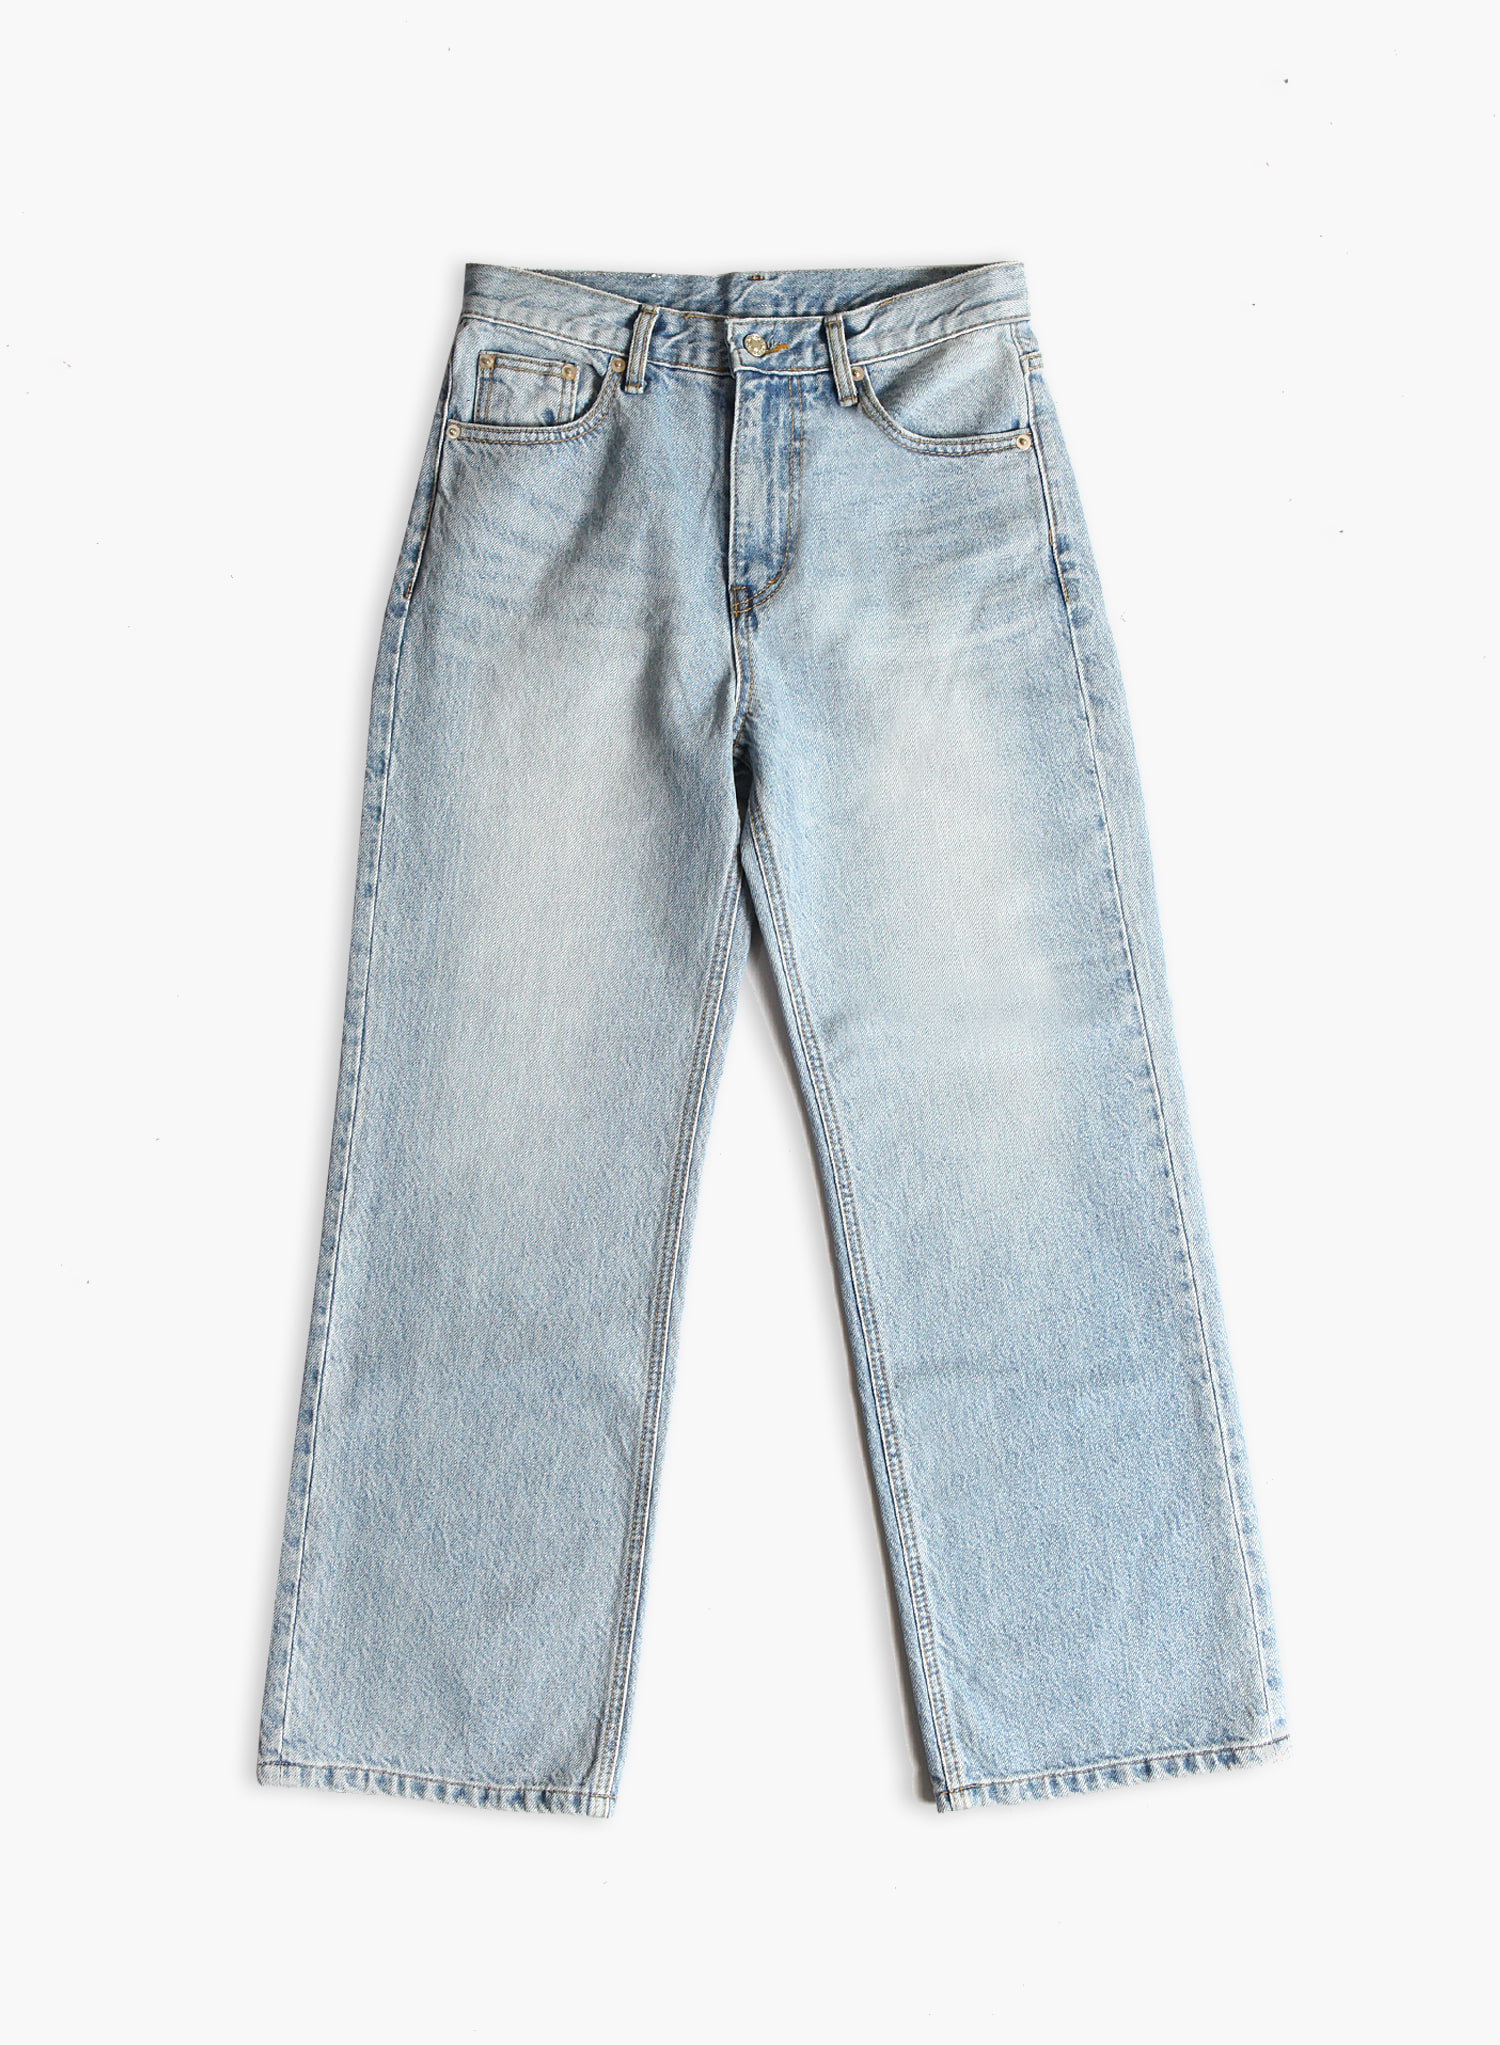 [SEASON OFF Event 50%↓] WIDE JEANS / LIGHT BLUE